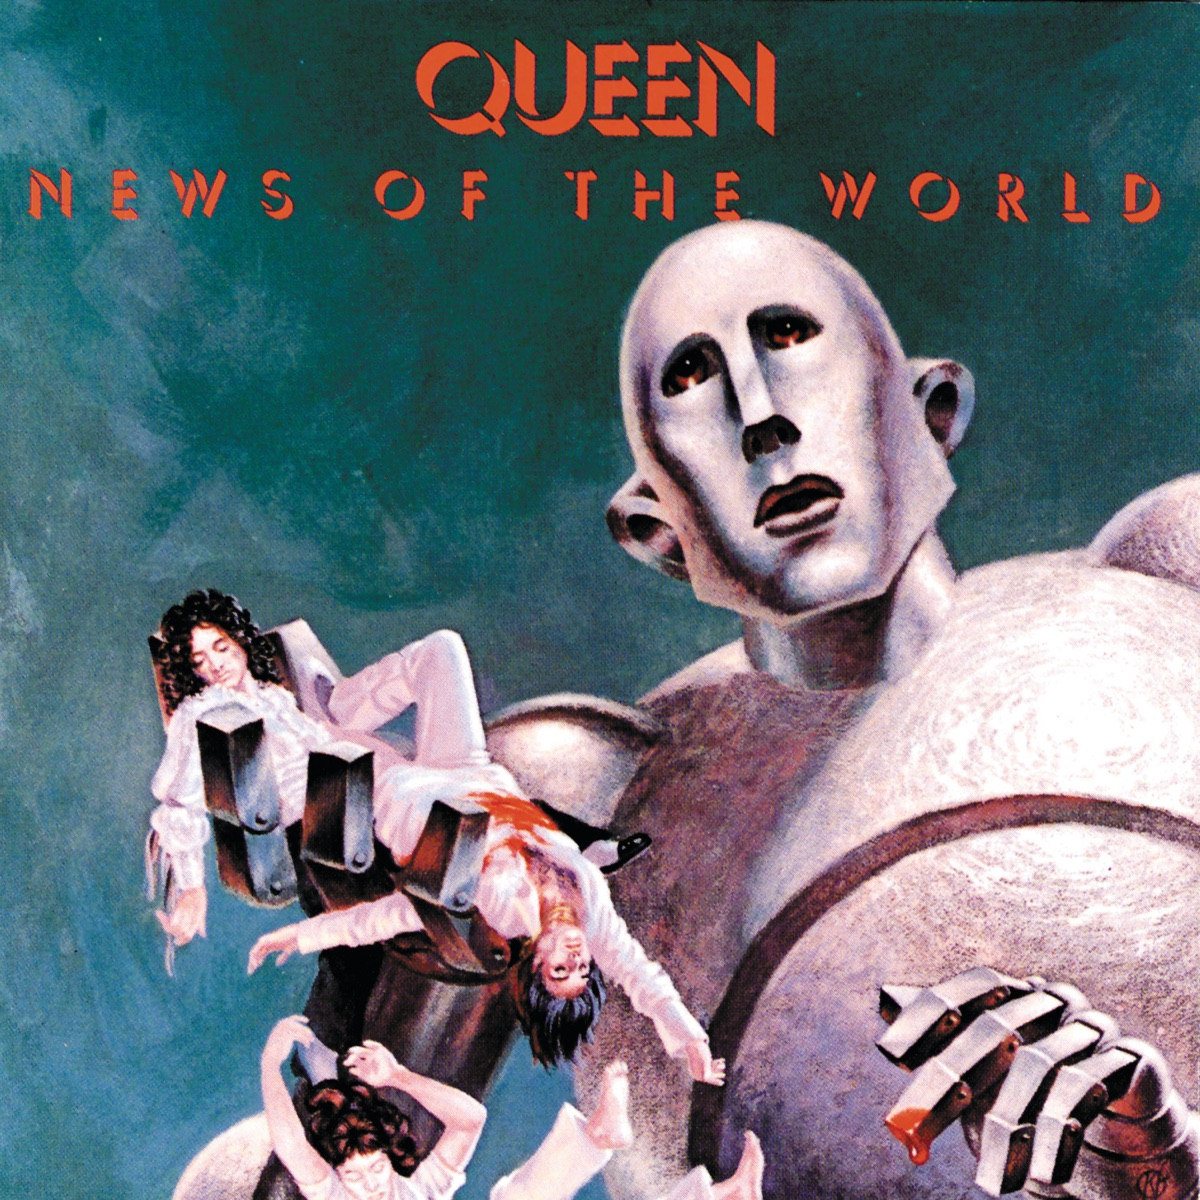 News of the World Queen CD cover